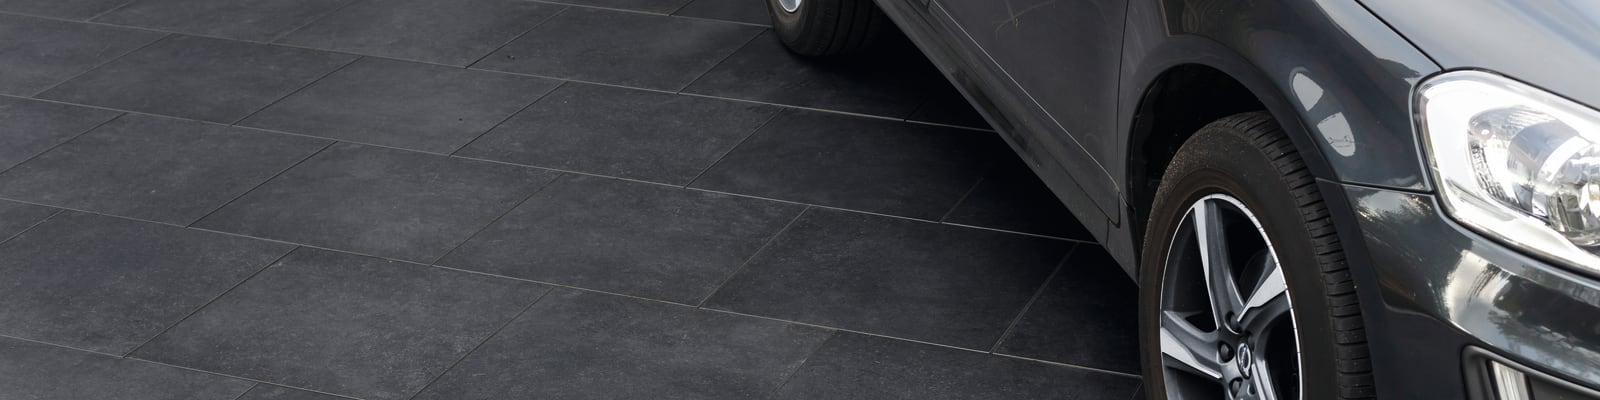 SYMPHONY Plus driveway in Charcoal